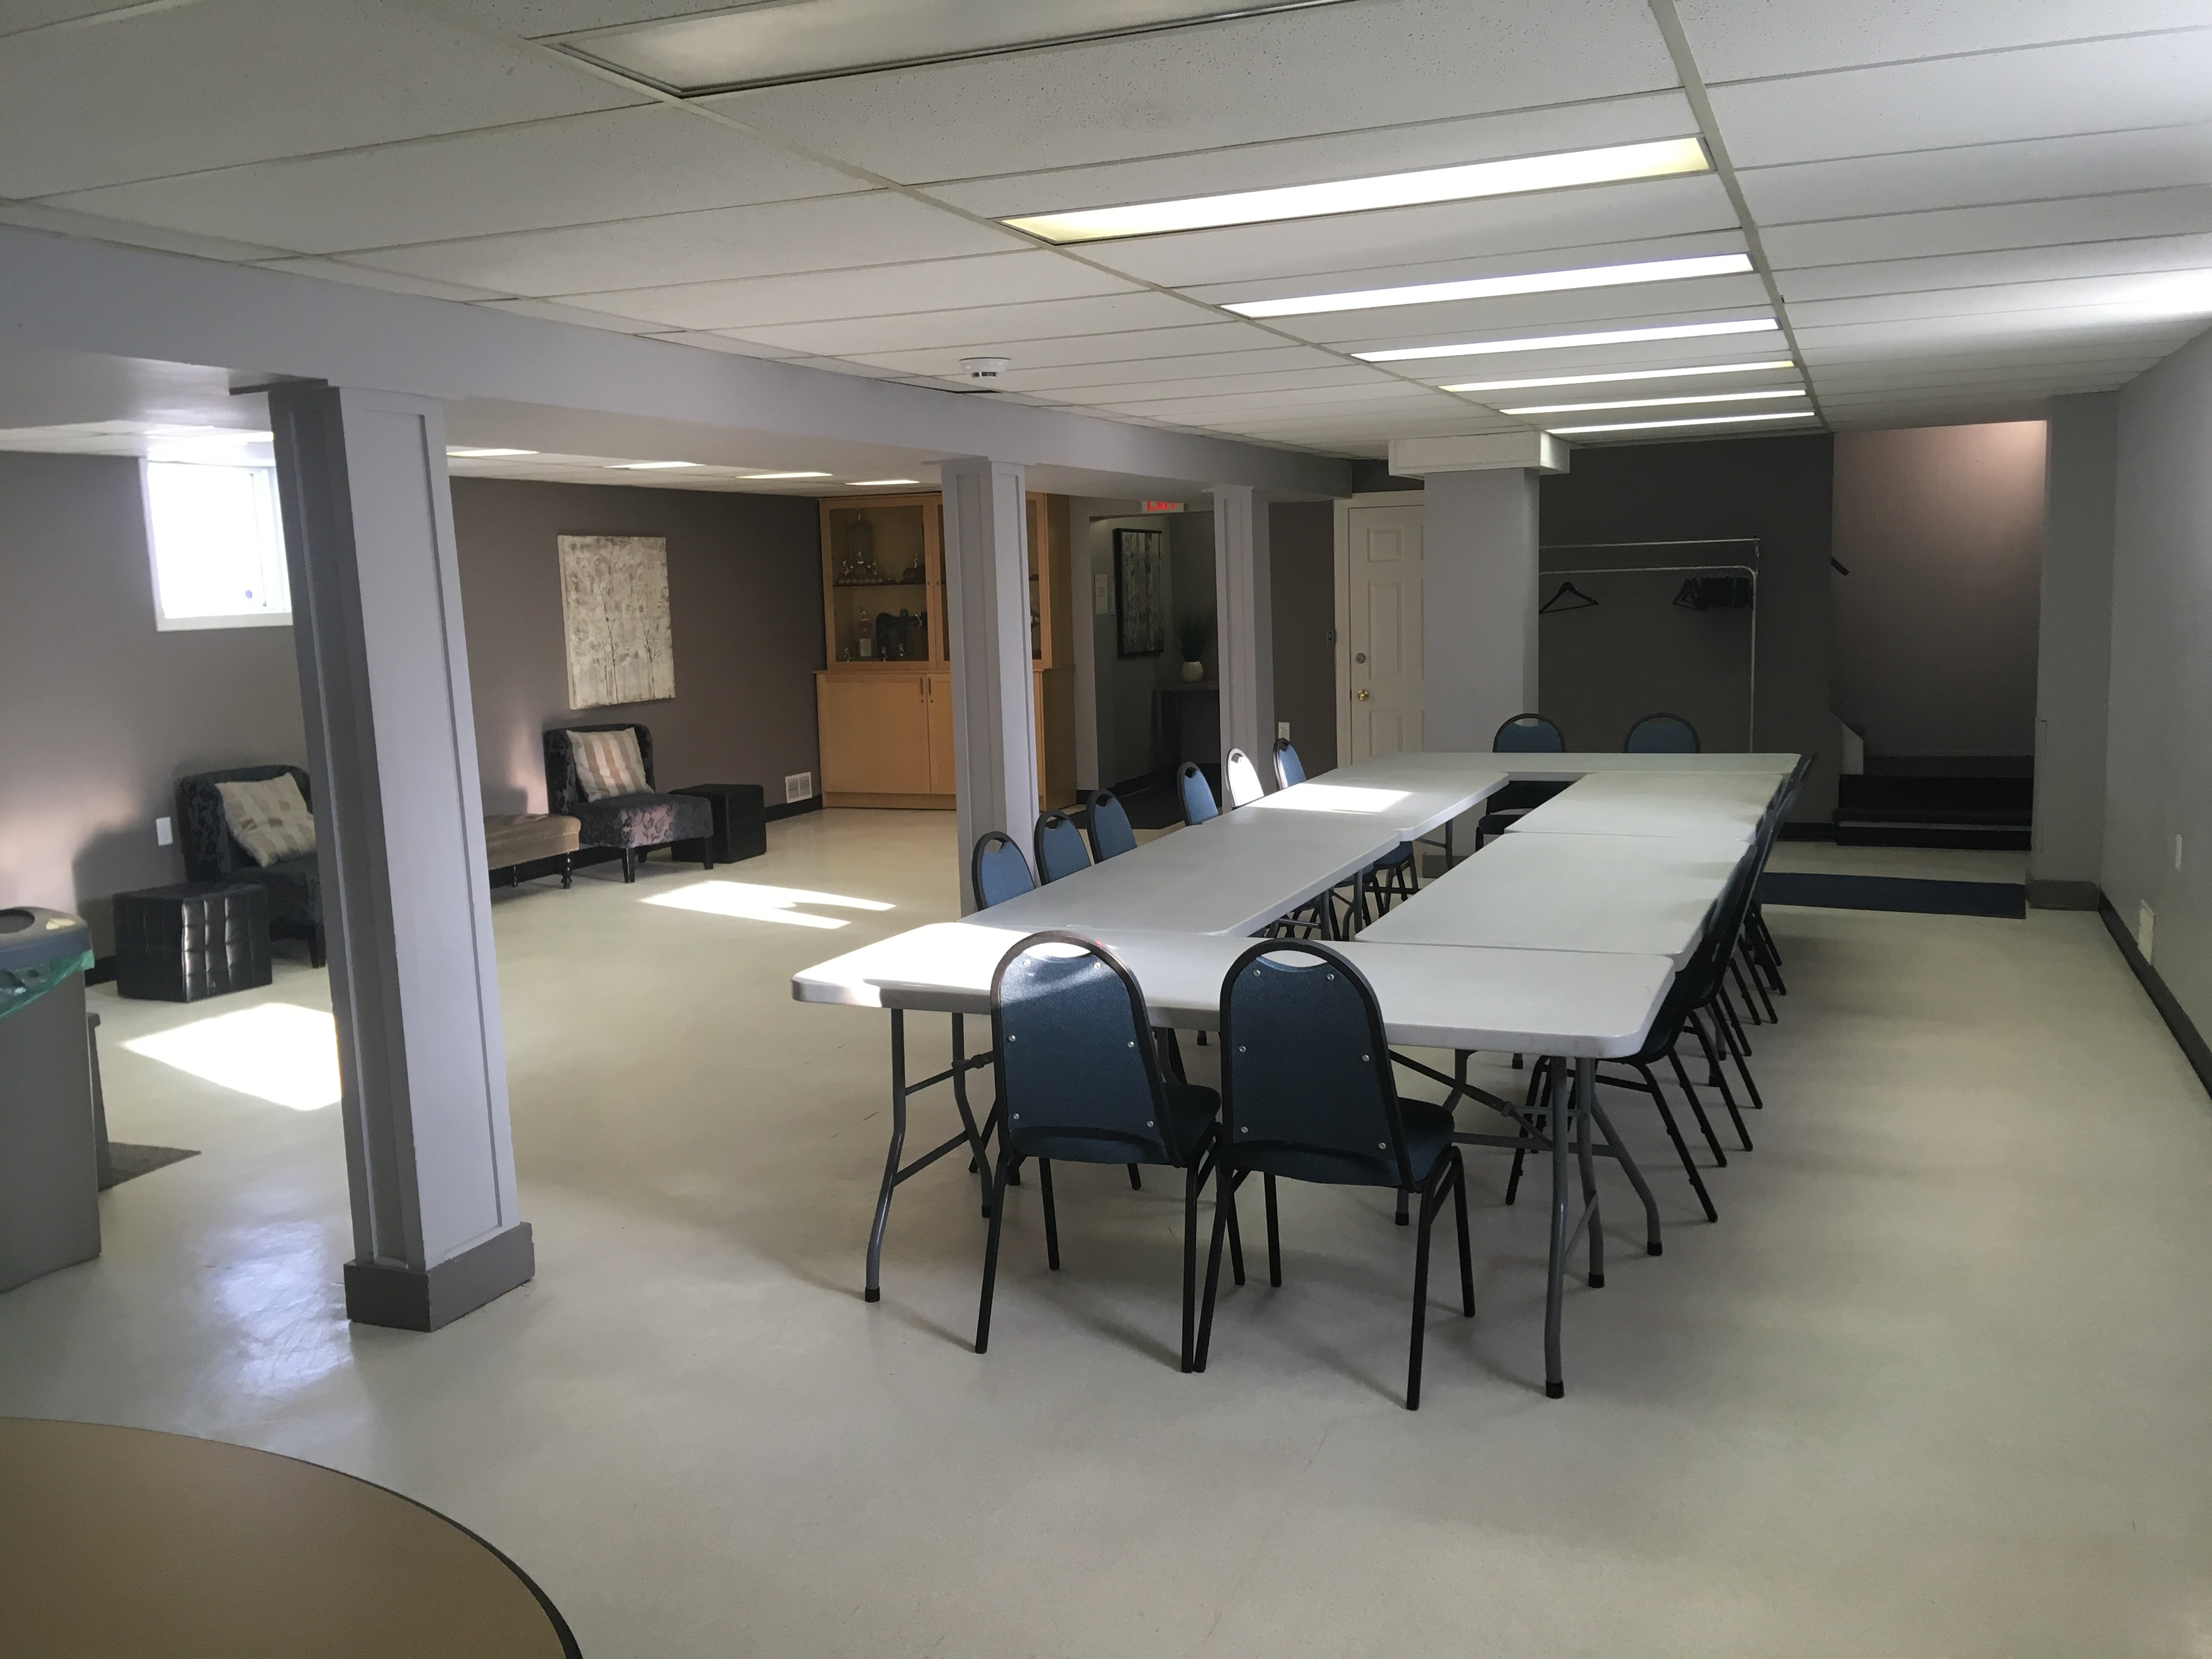 Tuxedo Park Community Hall Lower for Rent board room style